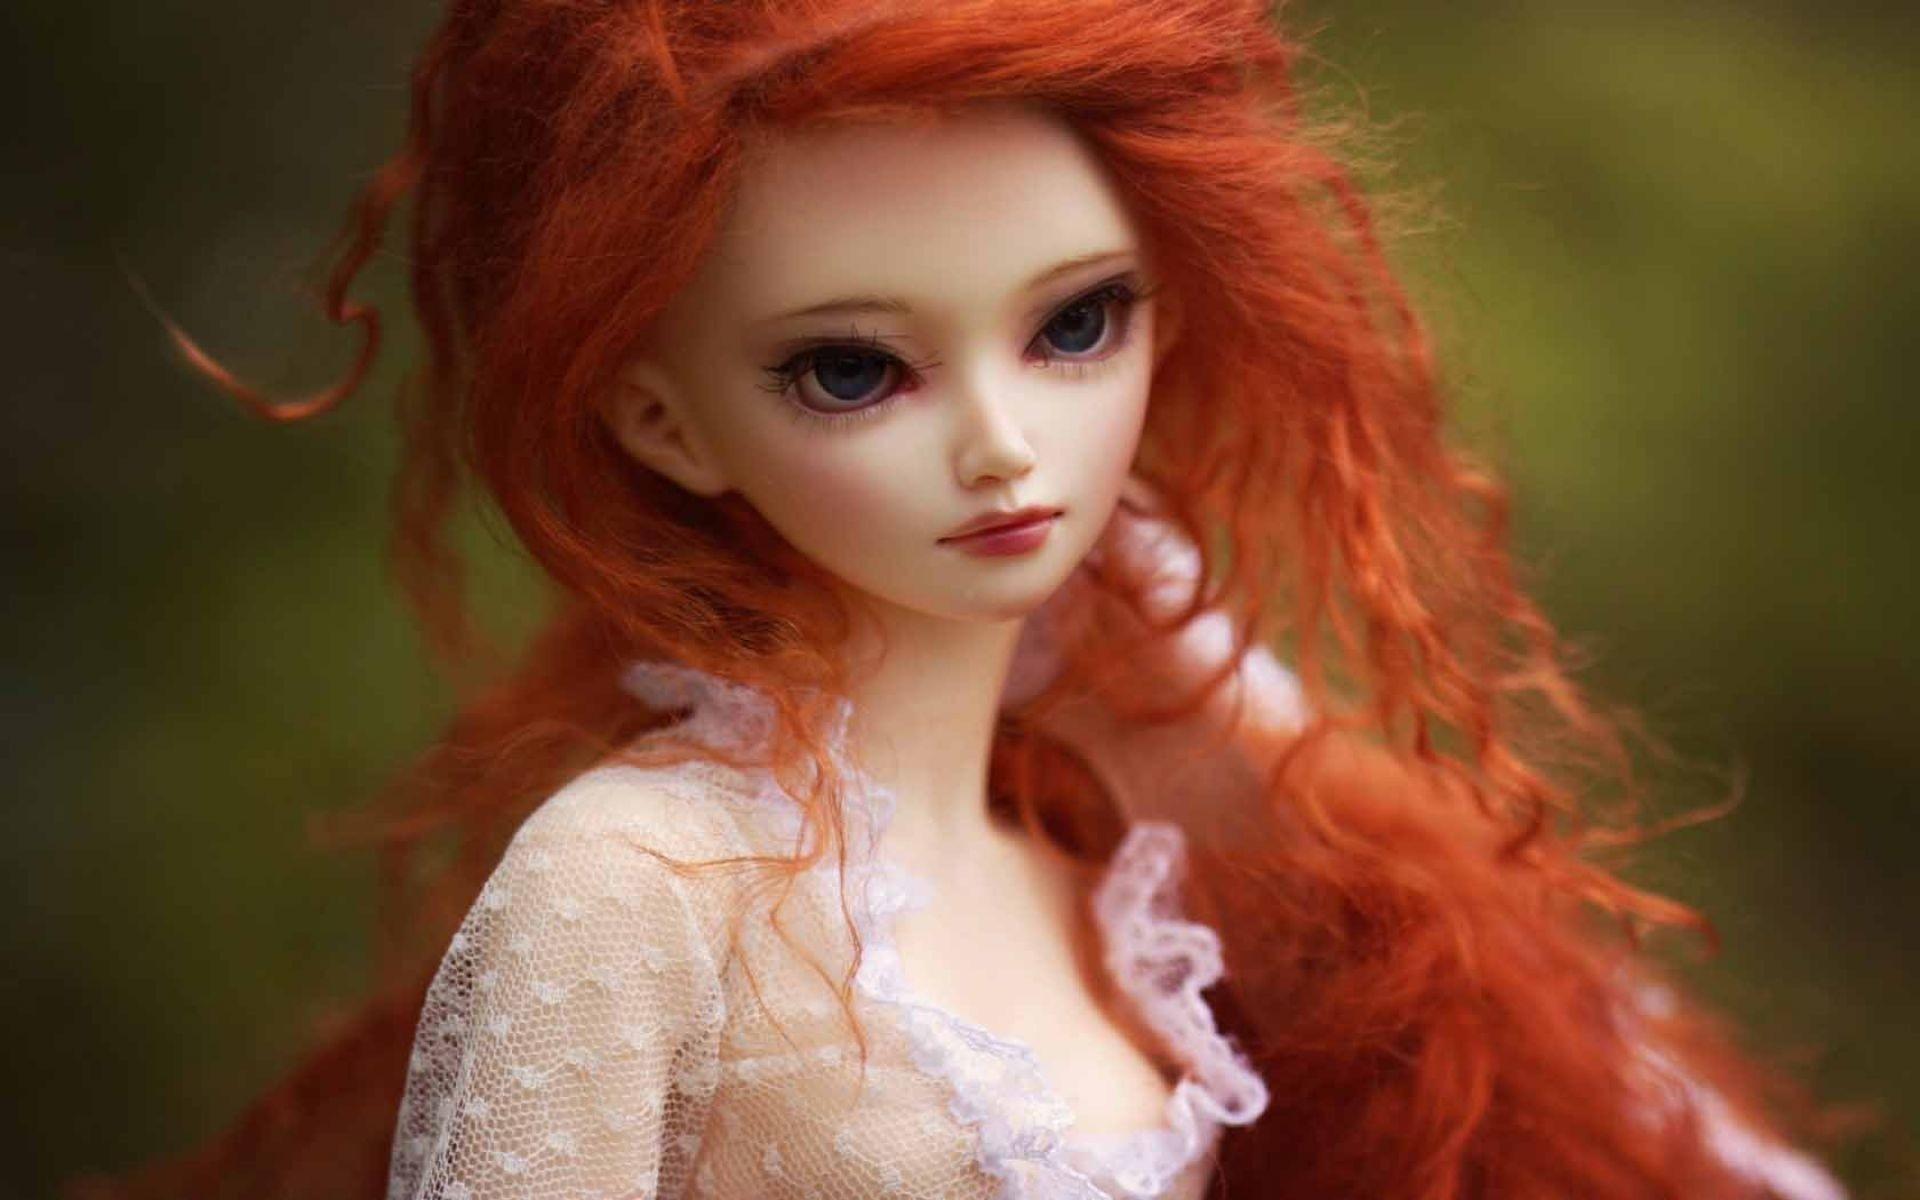 Girl Doll Redhead Toy Wallpaper   HD Anime Wallpaper Free Download …